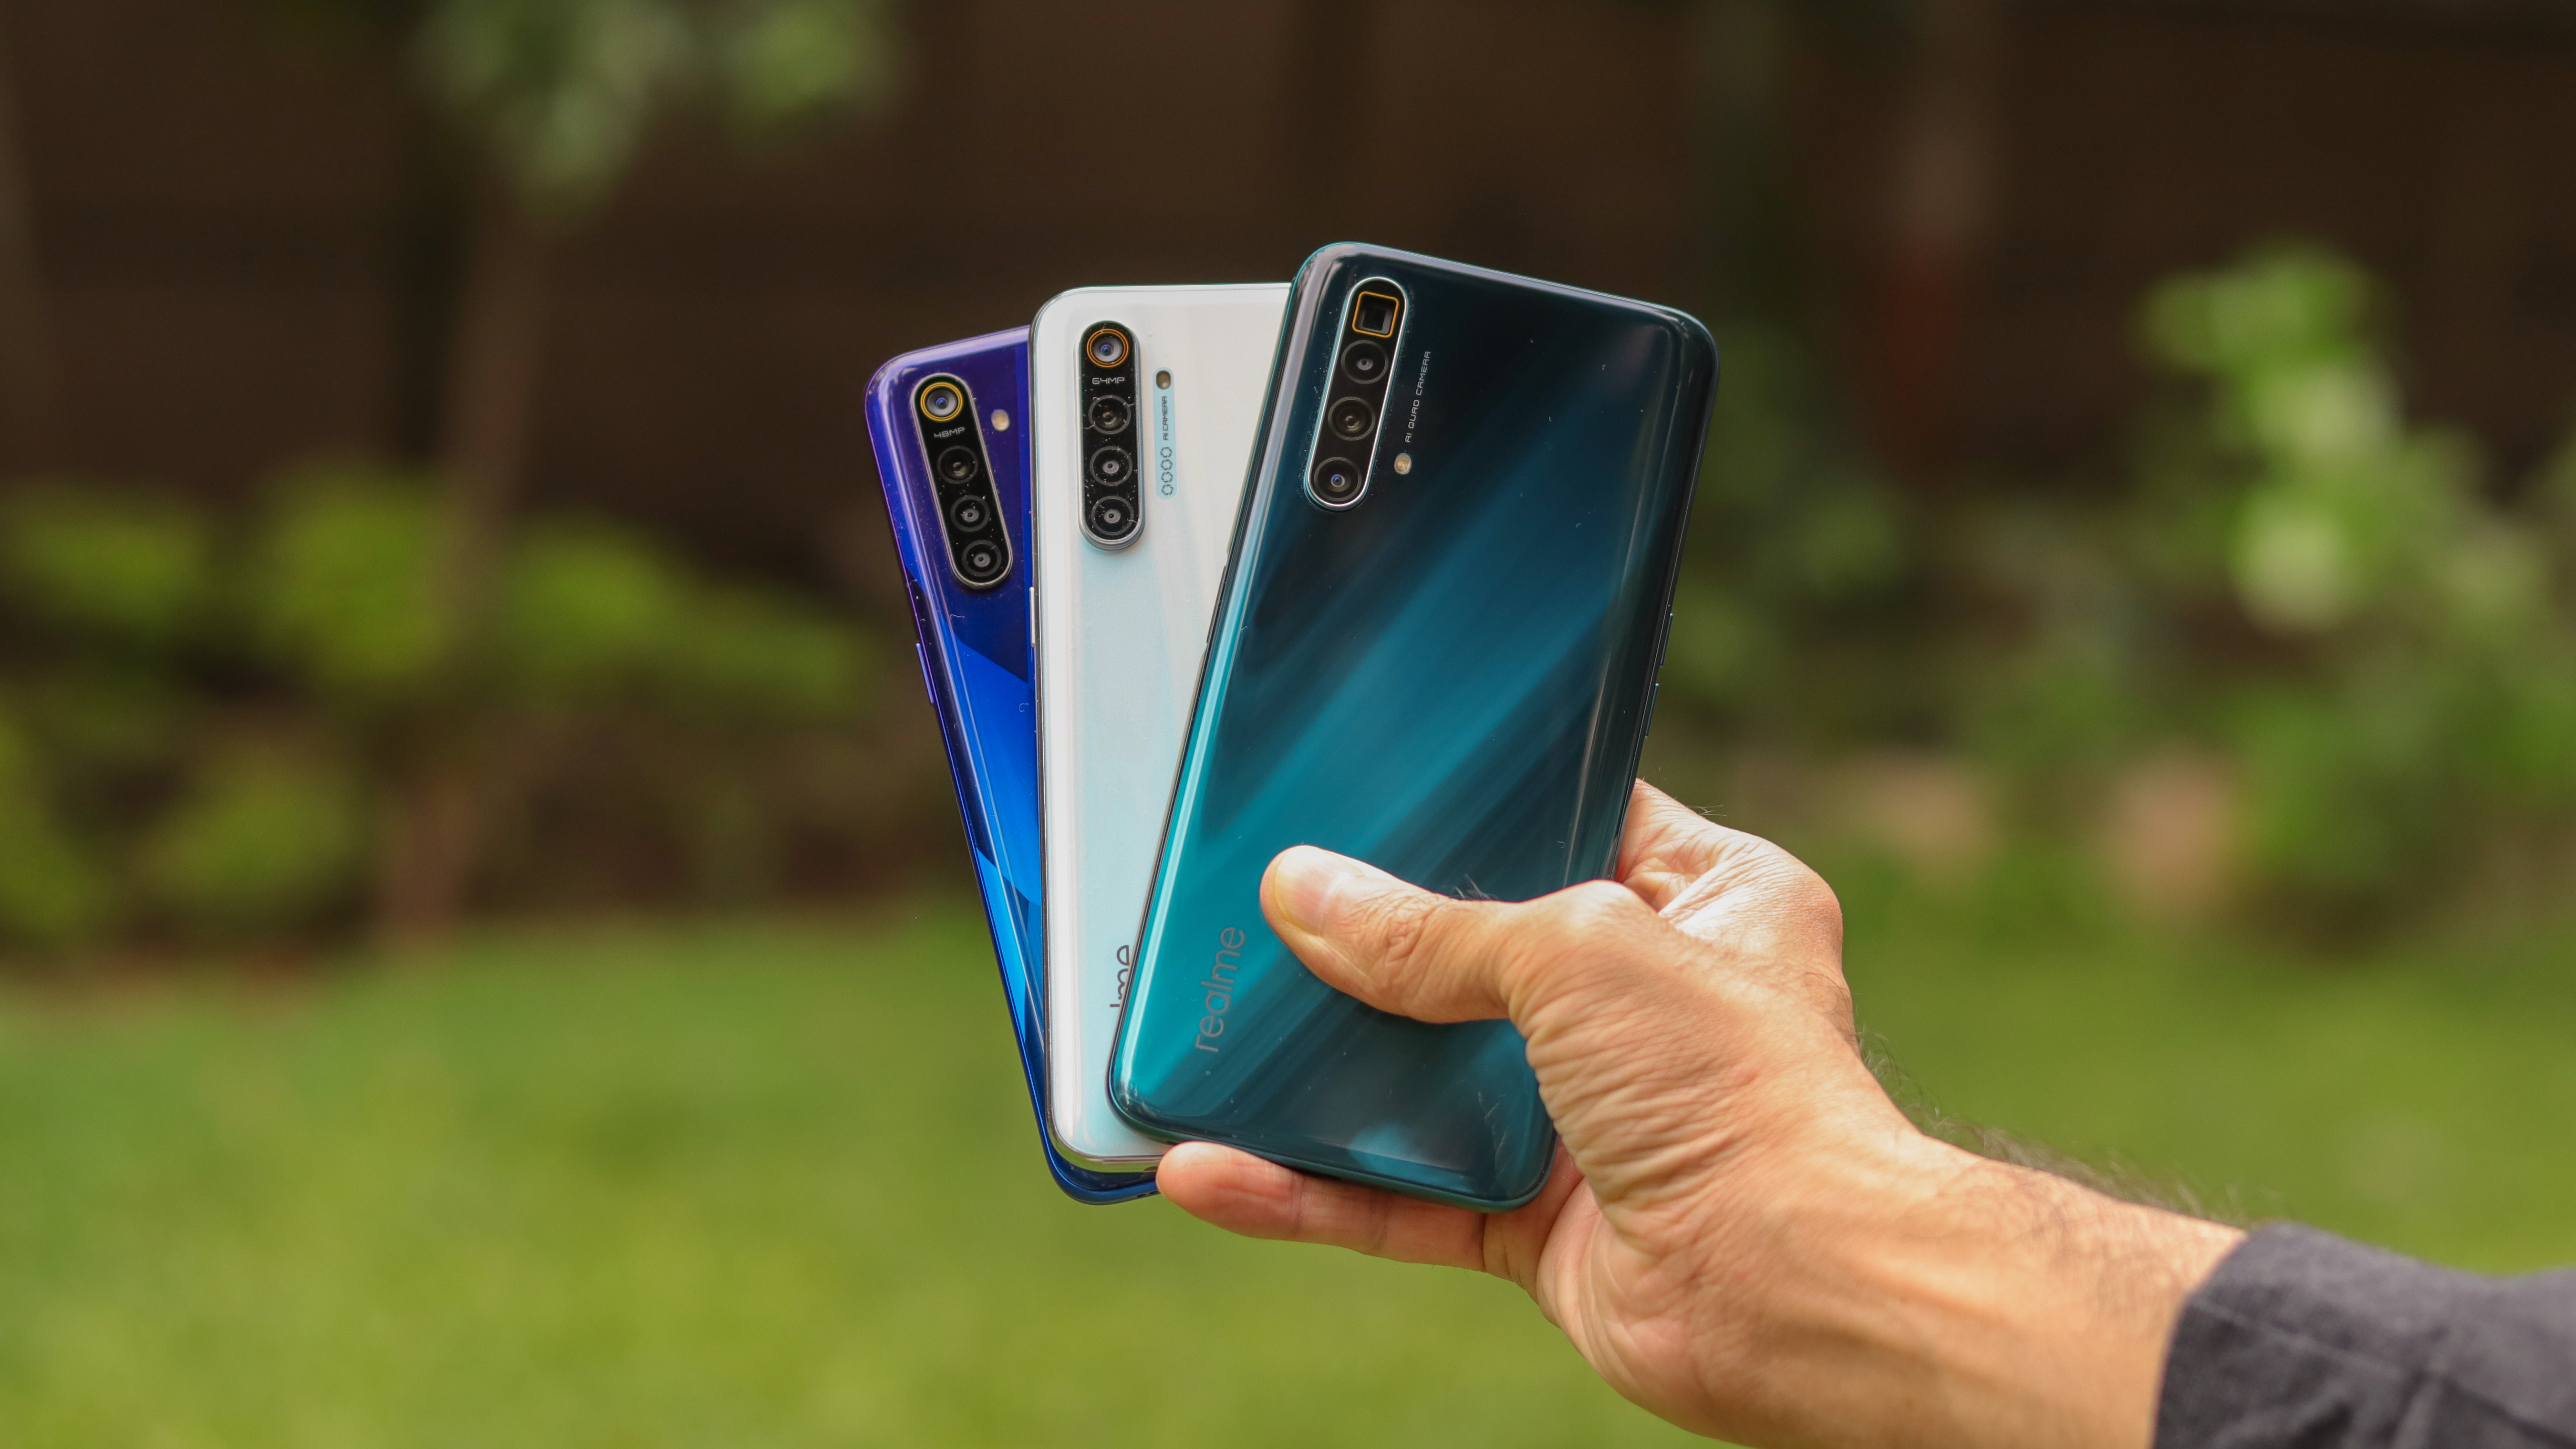 Other Realme phones with a similar design